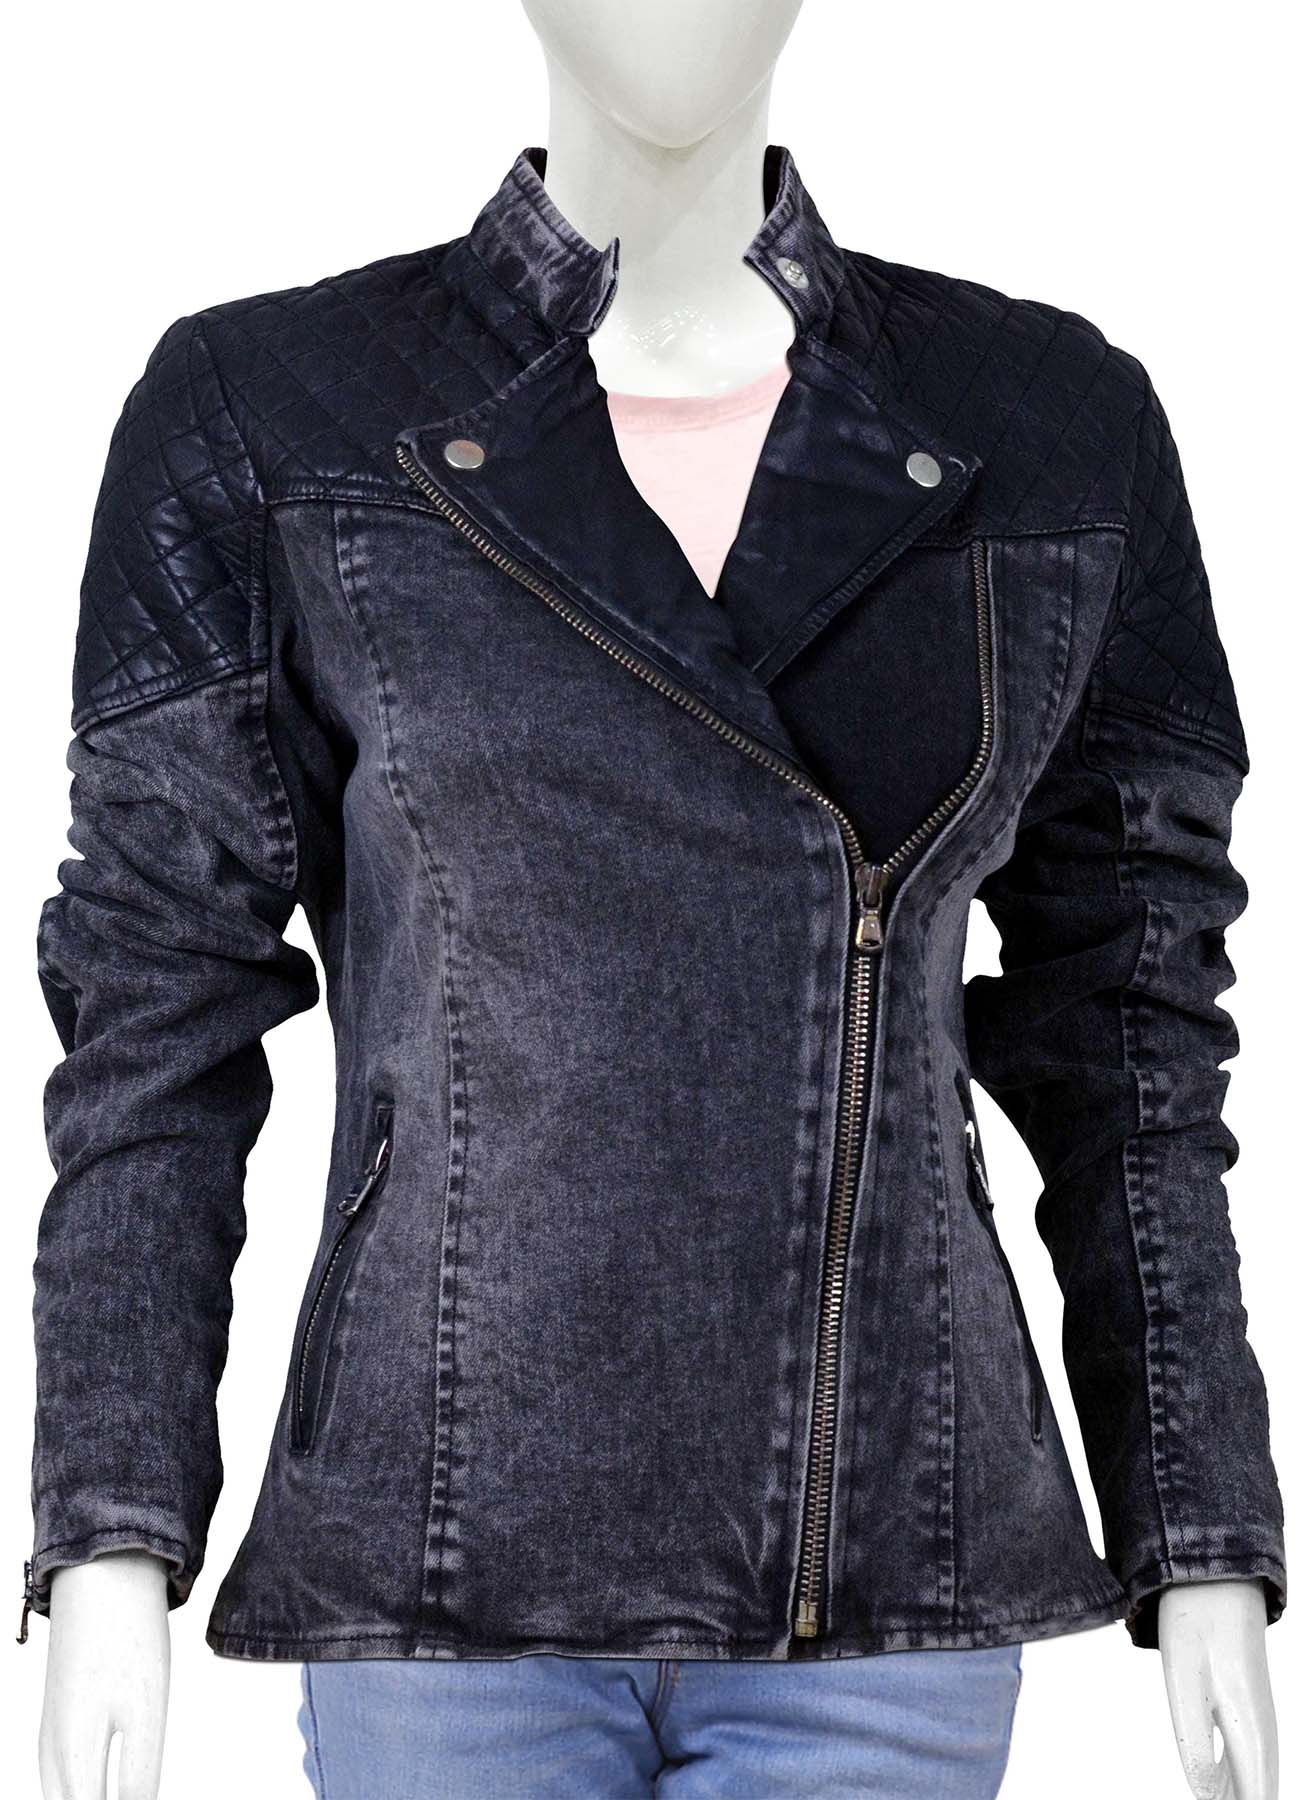 Denim Jacket With Leather Top For Women